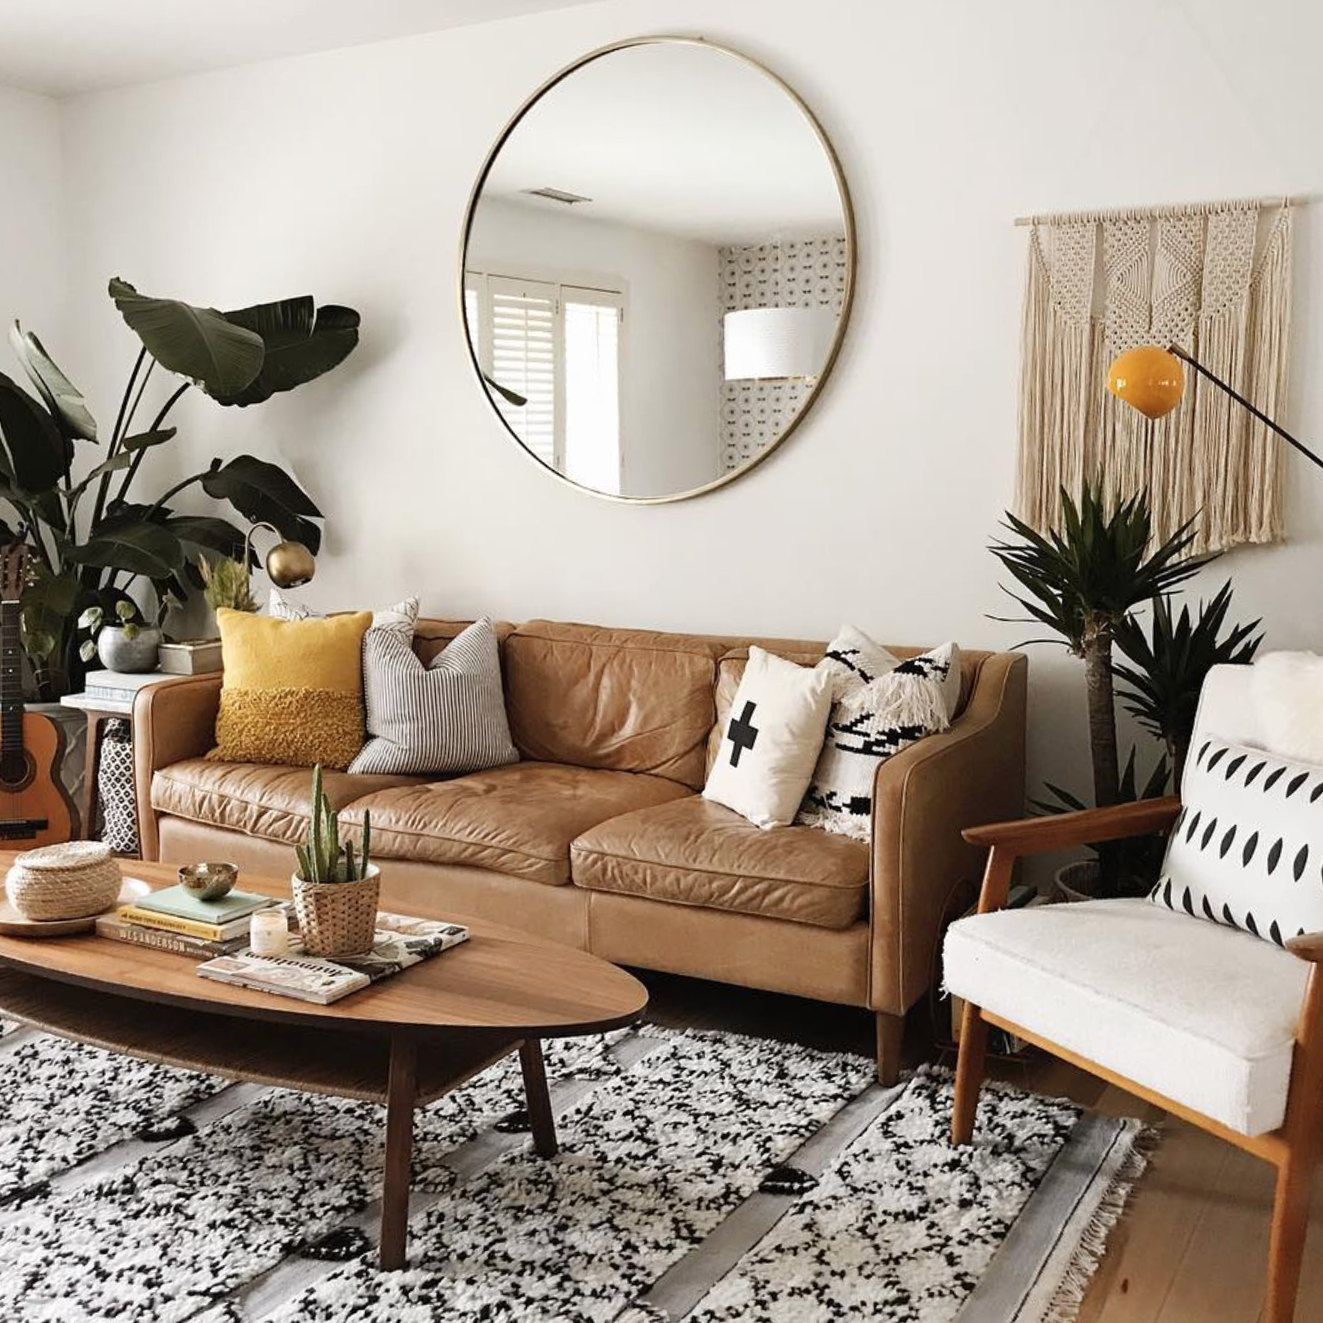 7 Apartment Decorating And Small Living Room Ideas The Anastasia Co In 2020 Apartment Room Small Apartment Living Small Apartment Decorating